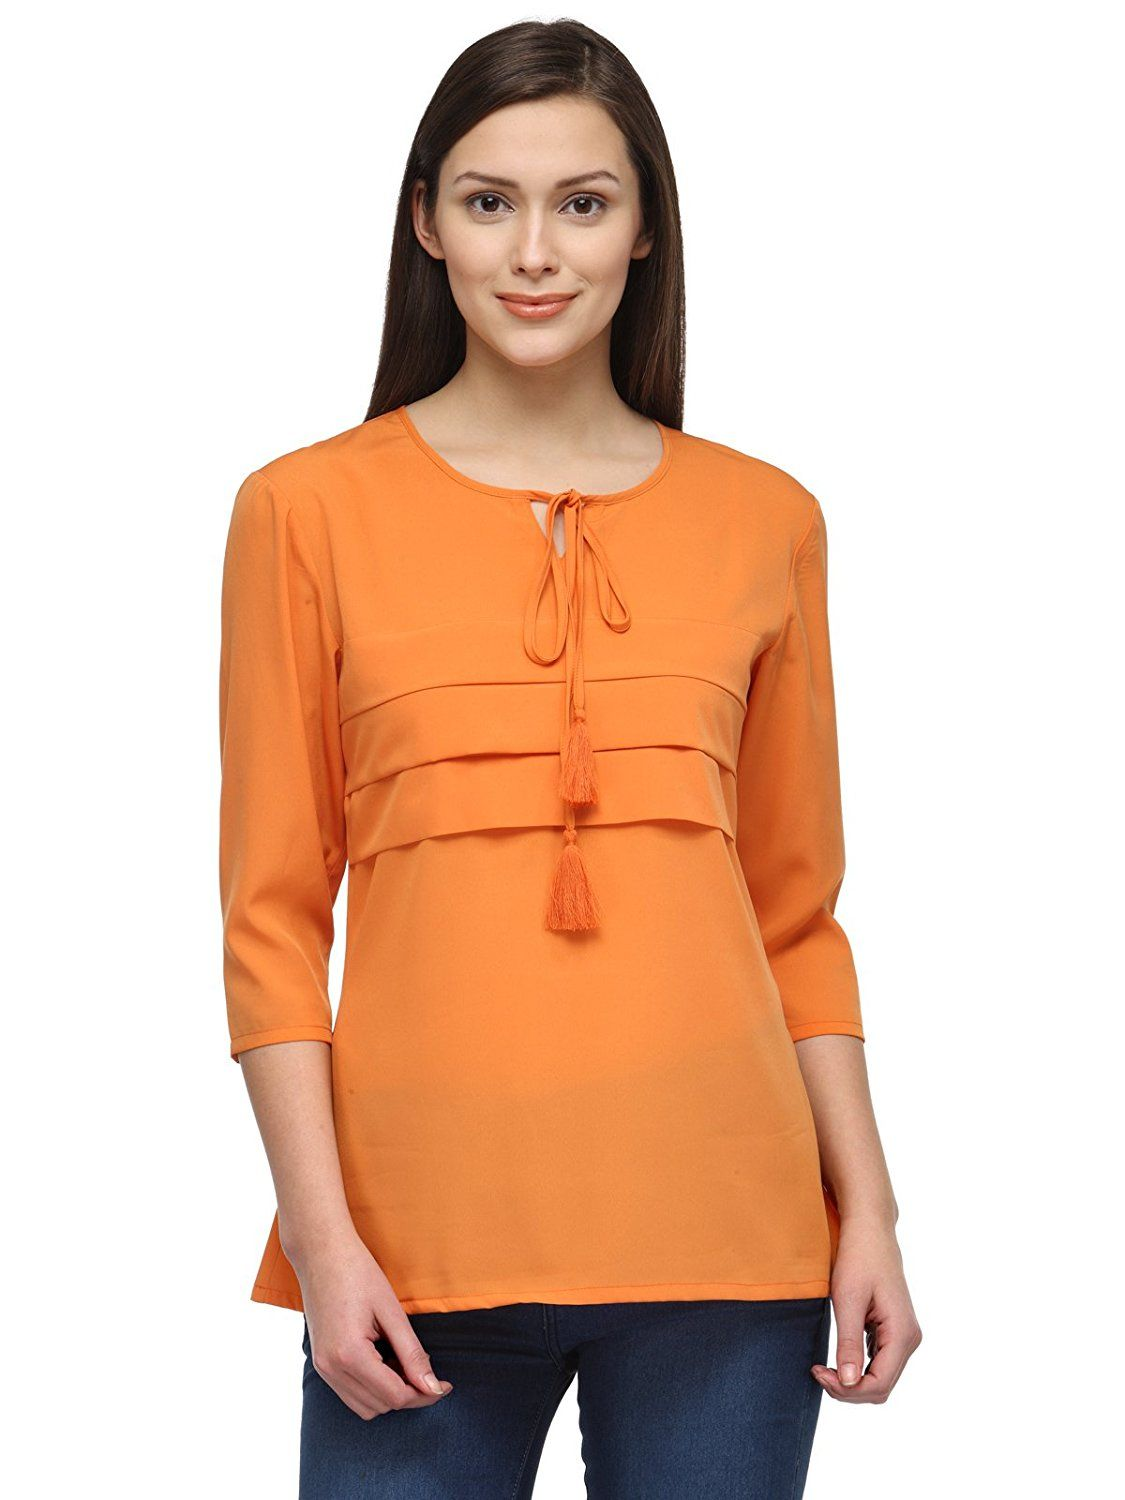 8454a38b2ae Tunic Nation Women s Orange 100% Poly Georgette Top